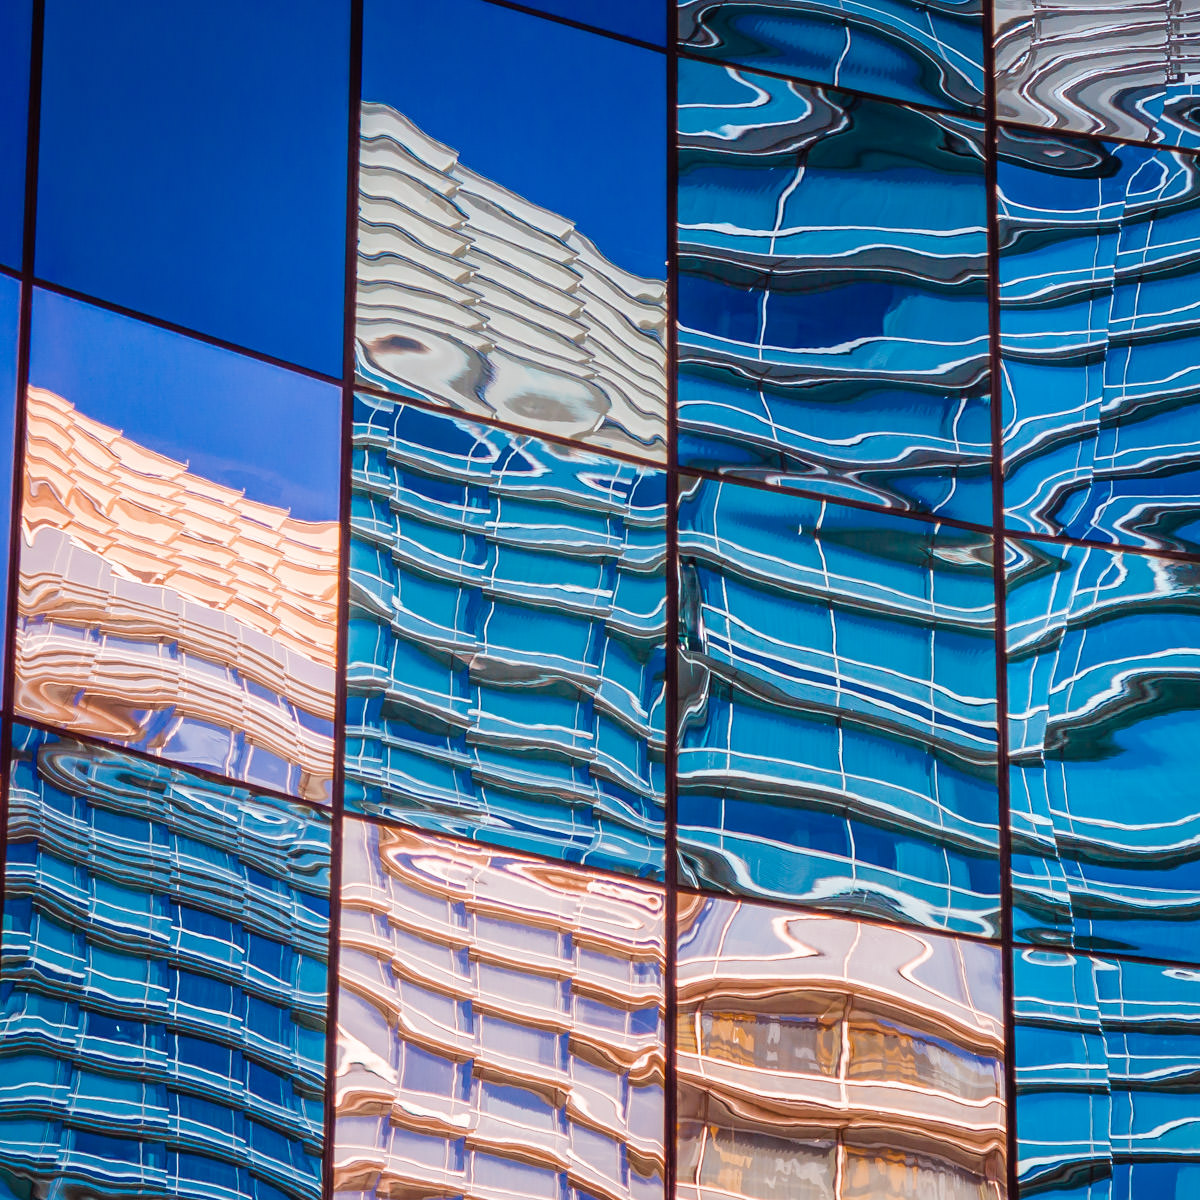 Las Vegas' Aria is reflected in the mirrored-glass exterior of the never-opened Harmon Hotel at CityCenter.